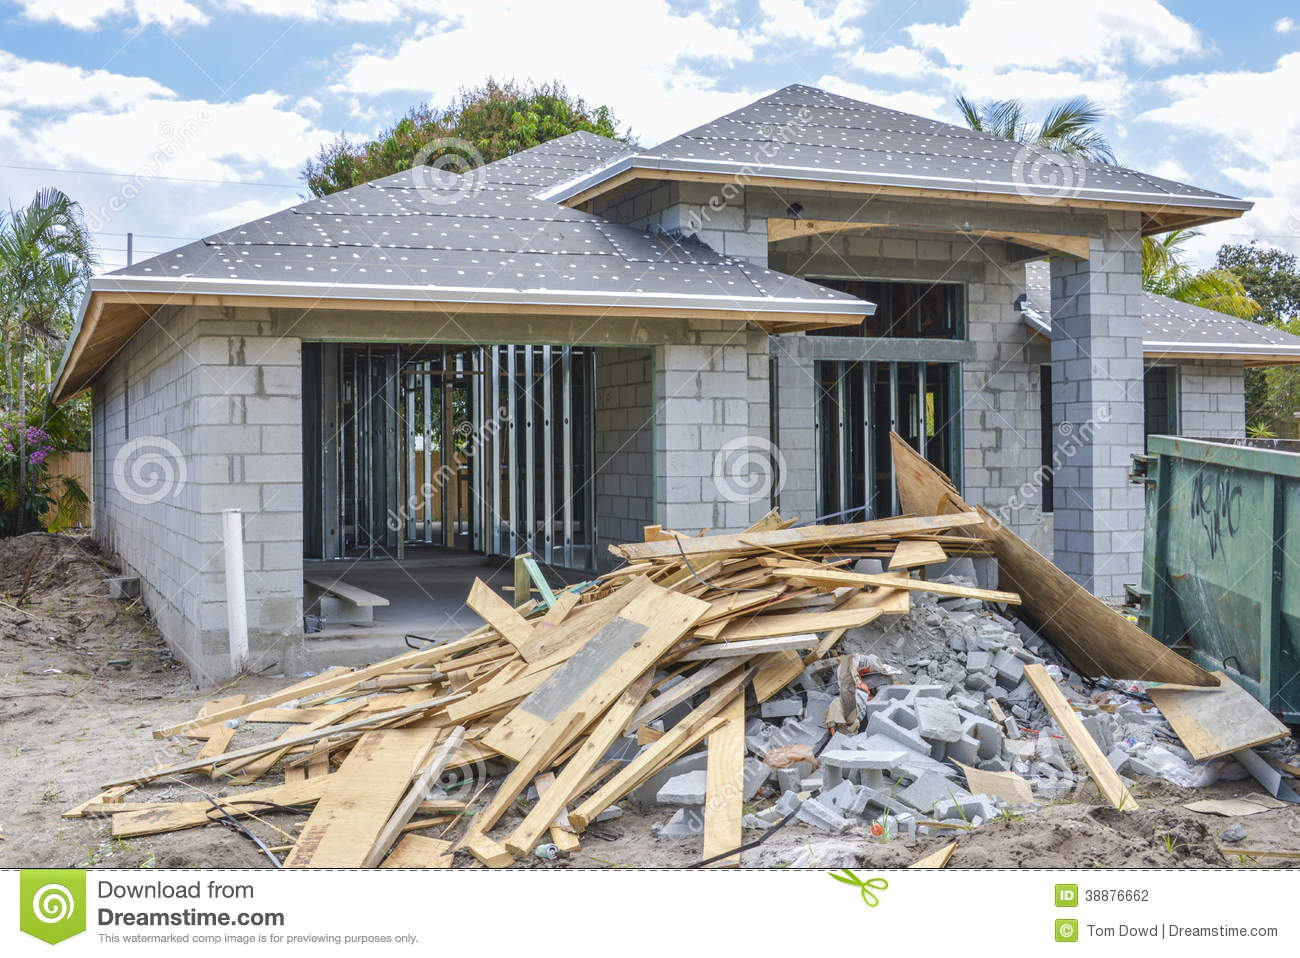 New Home And Construction Debris Stock Photo - Image: 38876662